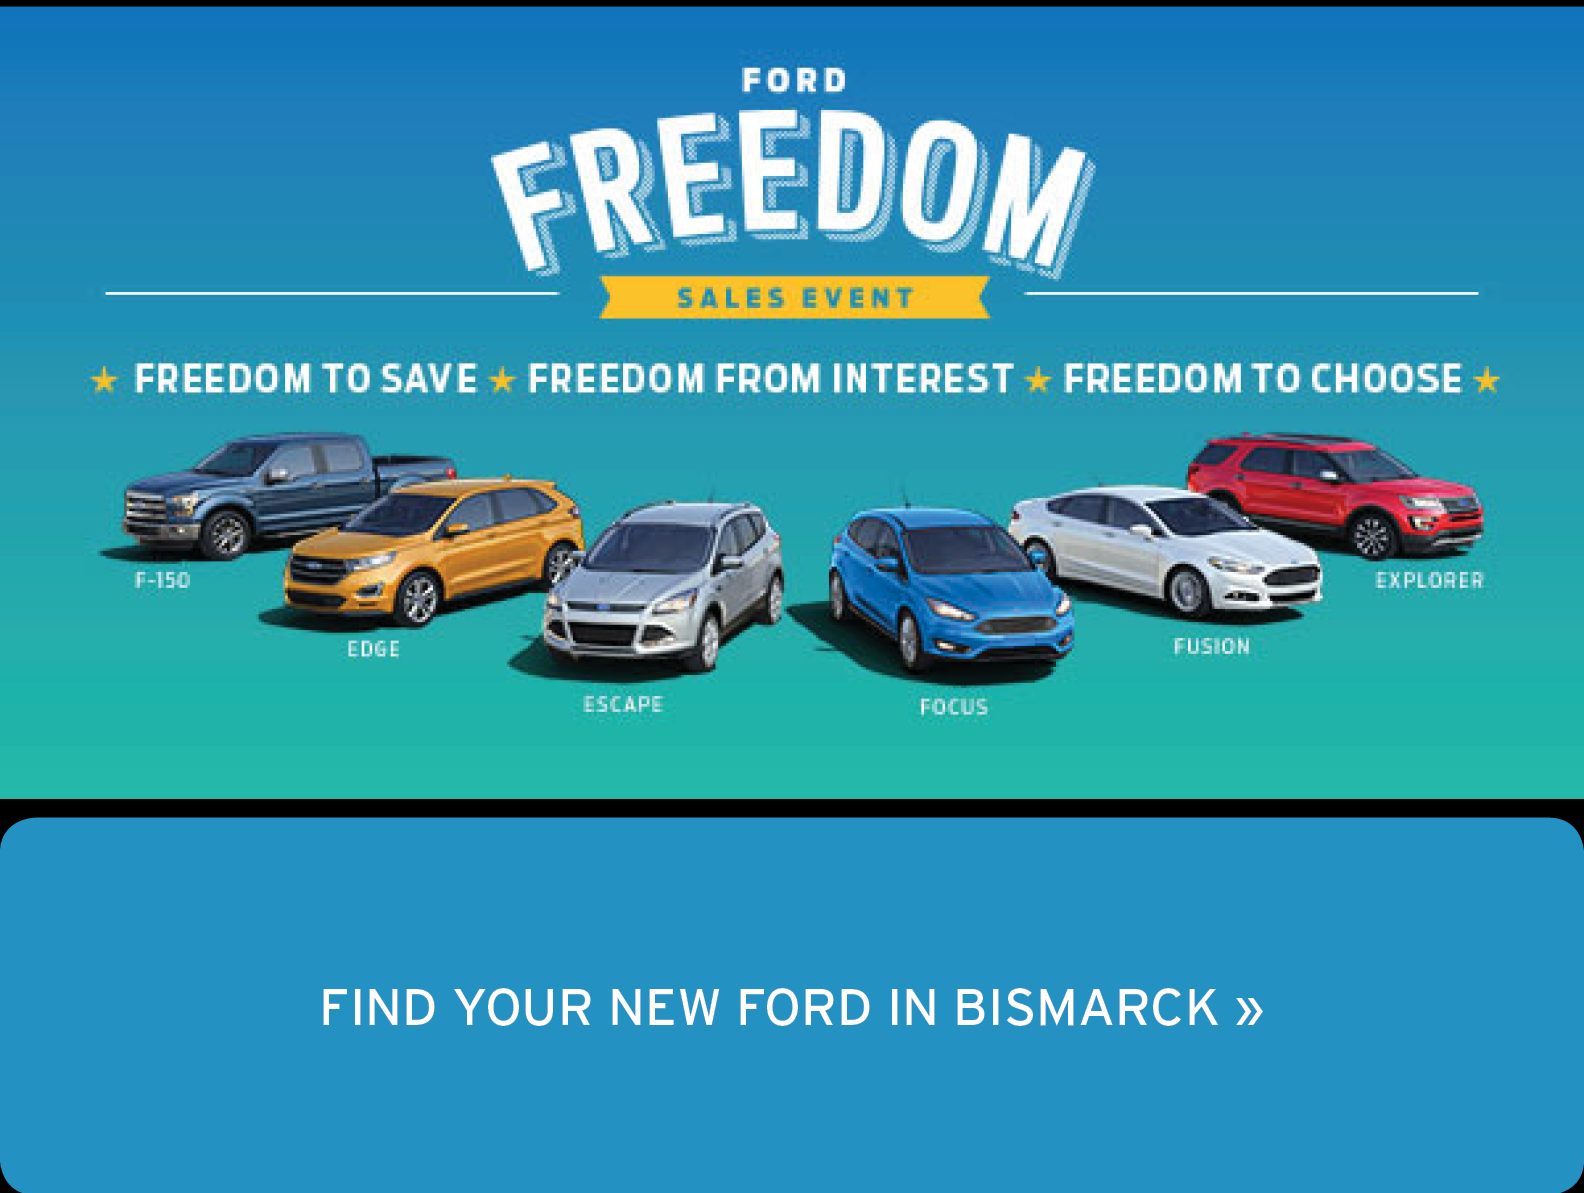 Eide_Ford_Freedom_Sales_Event_June_2016_2-1-007122-edited.png